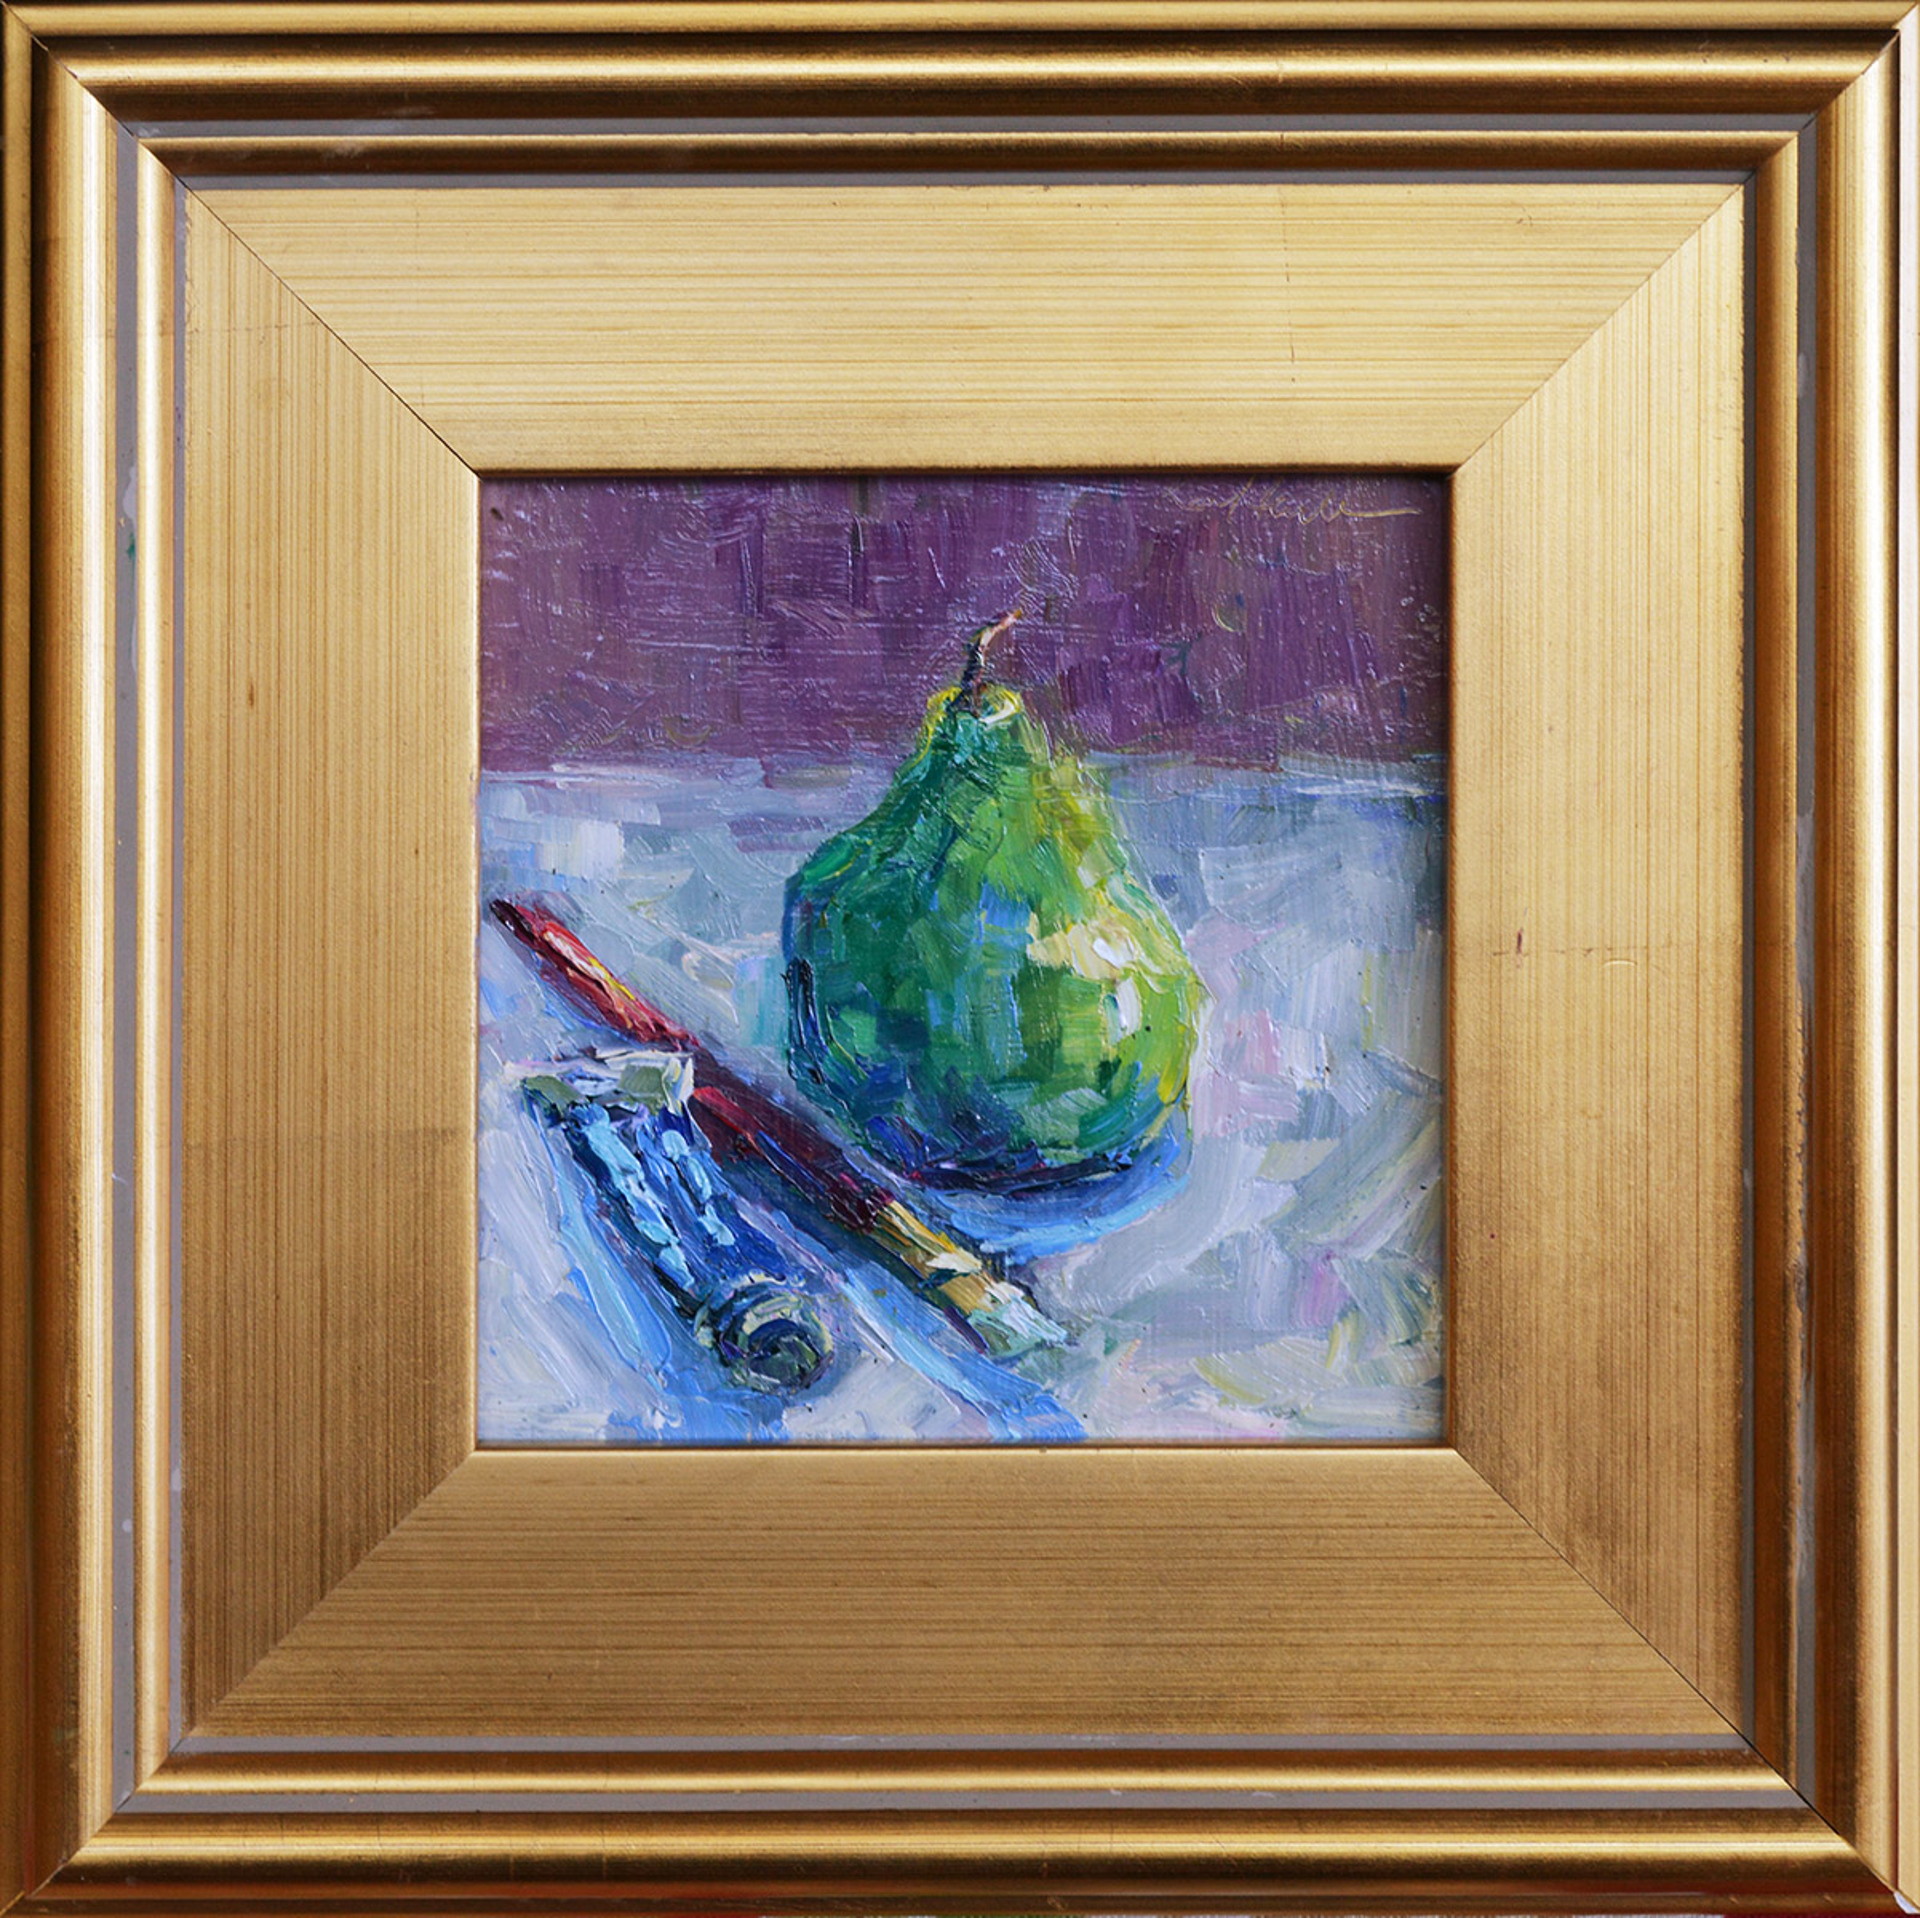 Kings Blue with Pear and Brush by Karen Hewitt Hagan